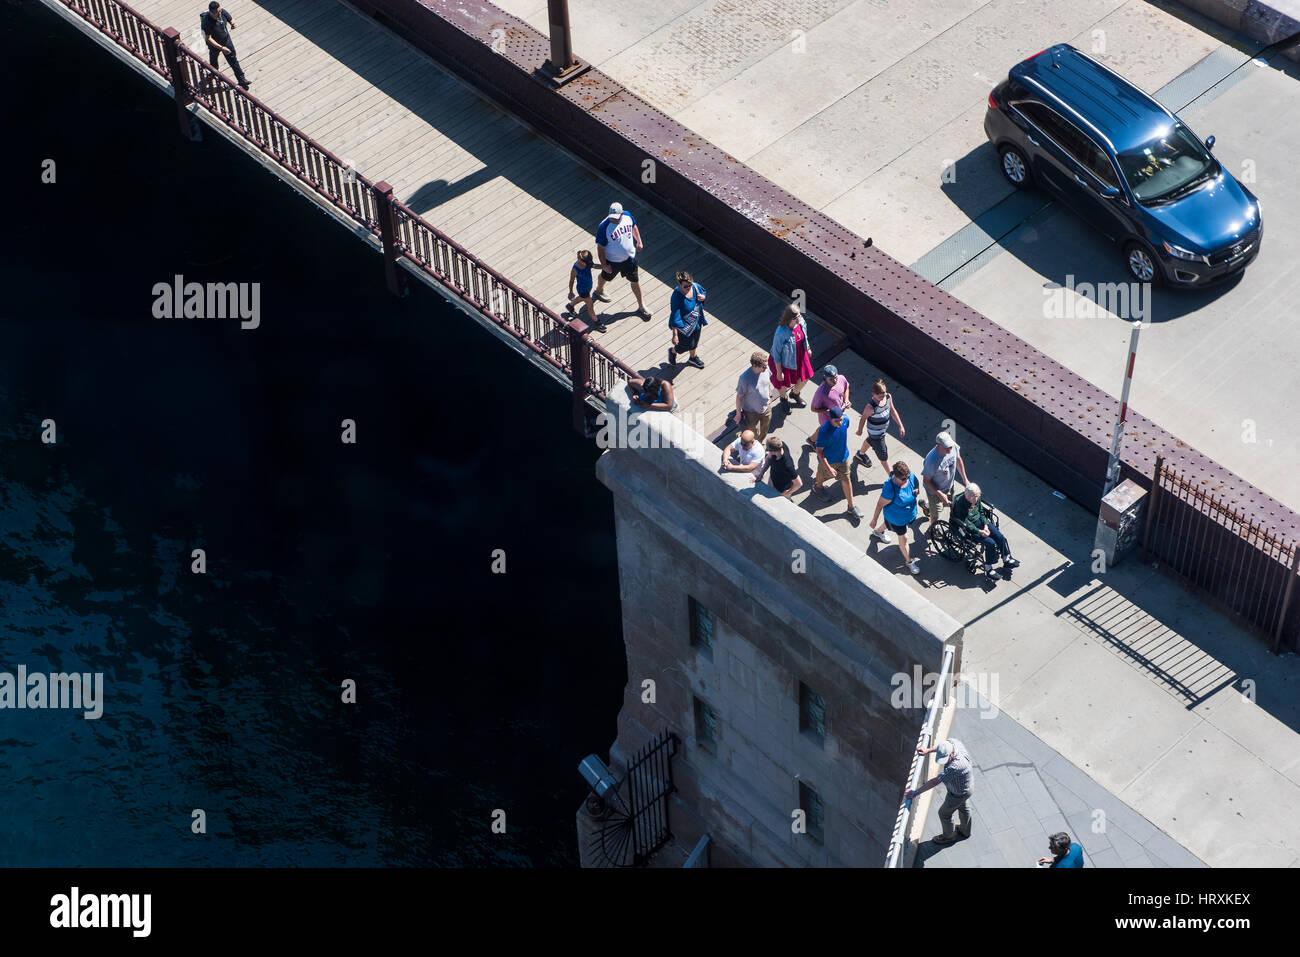 Chicago, USA - May 30, 2016: Aerial view of people walking on DuSable bridge in downtown Stock Photo